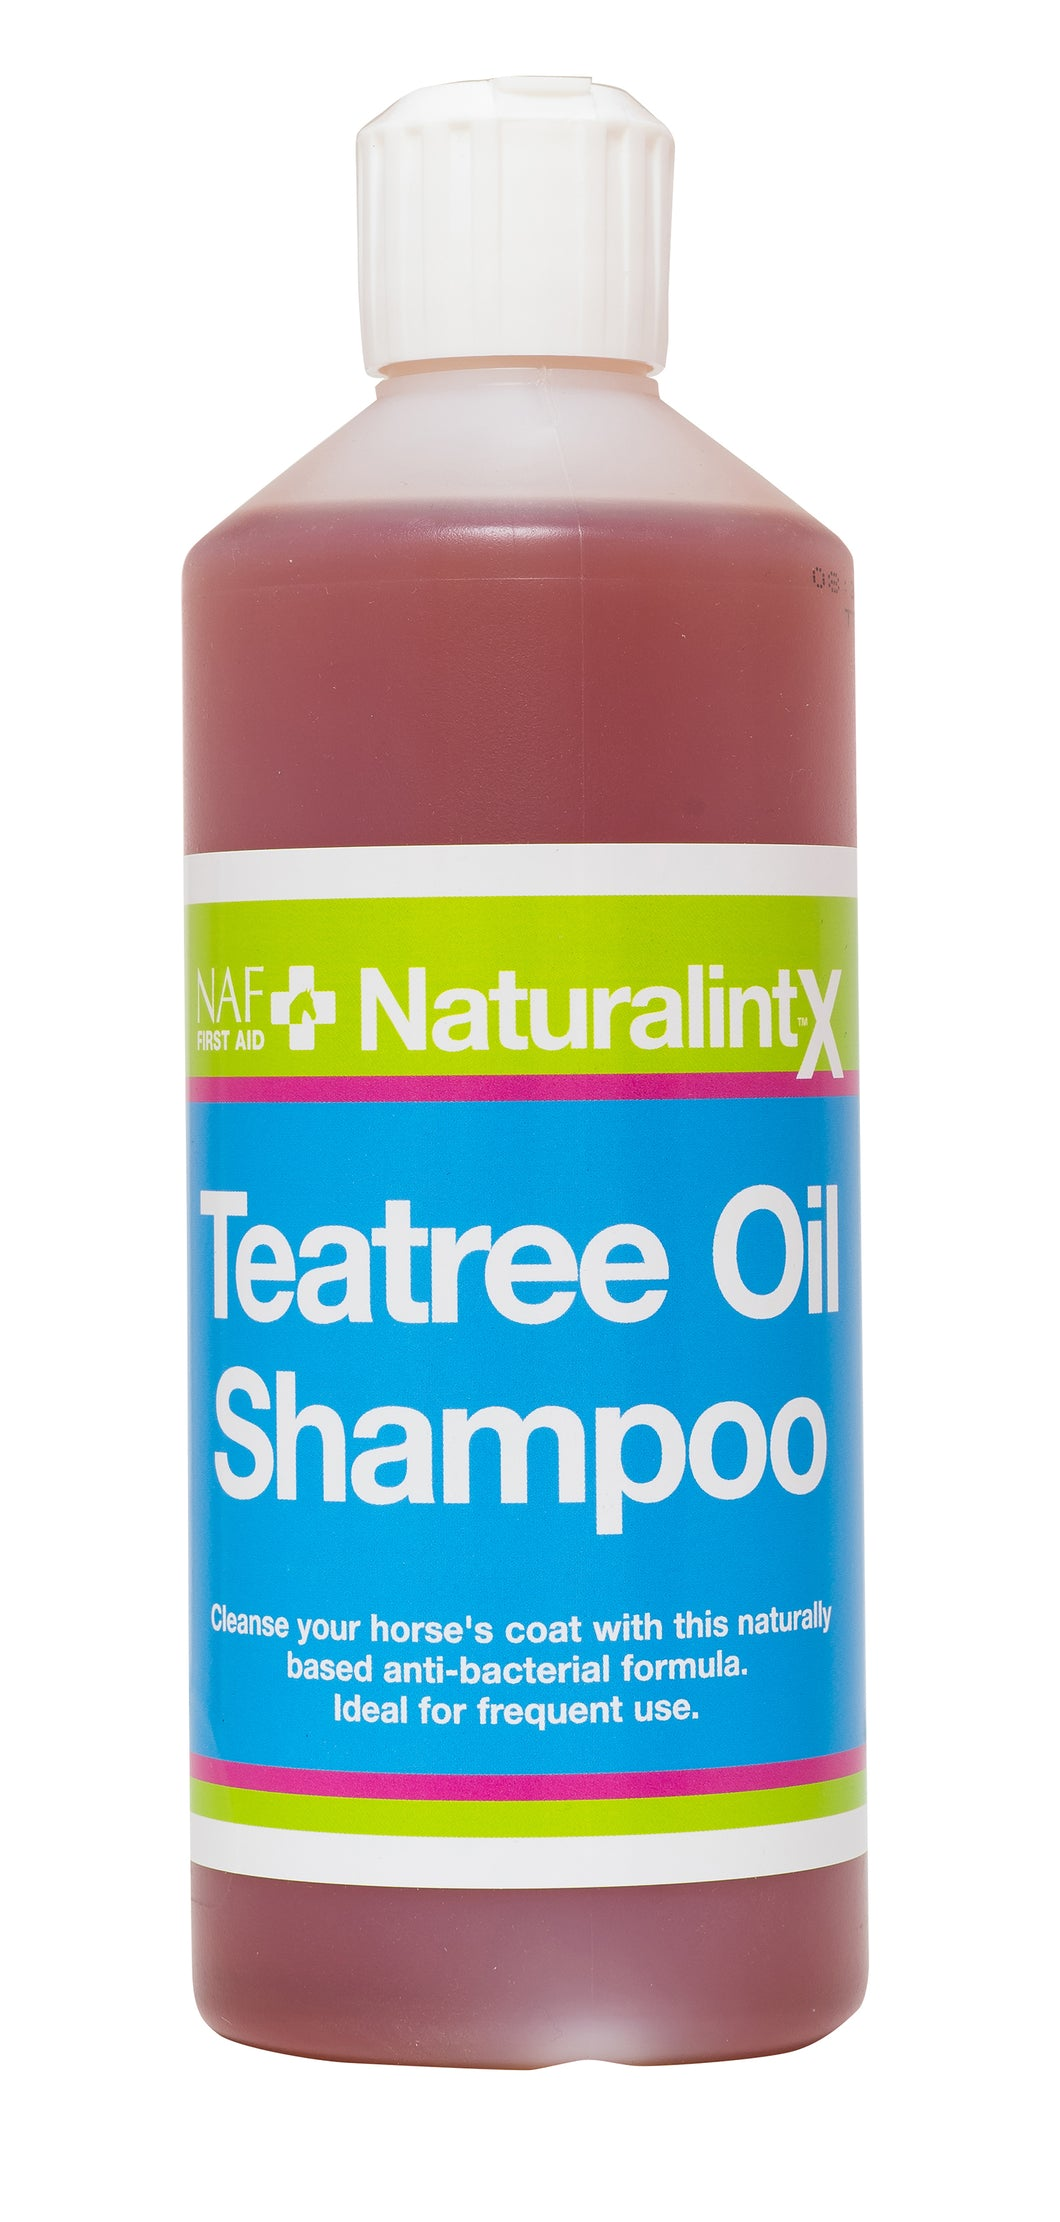 NAF - Naturalintx Teatree oil shampoo 500ml